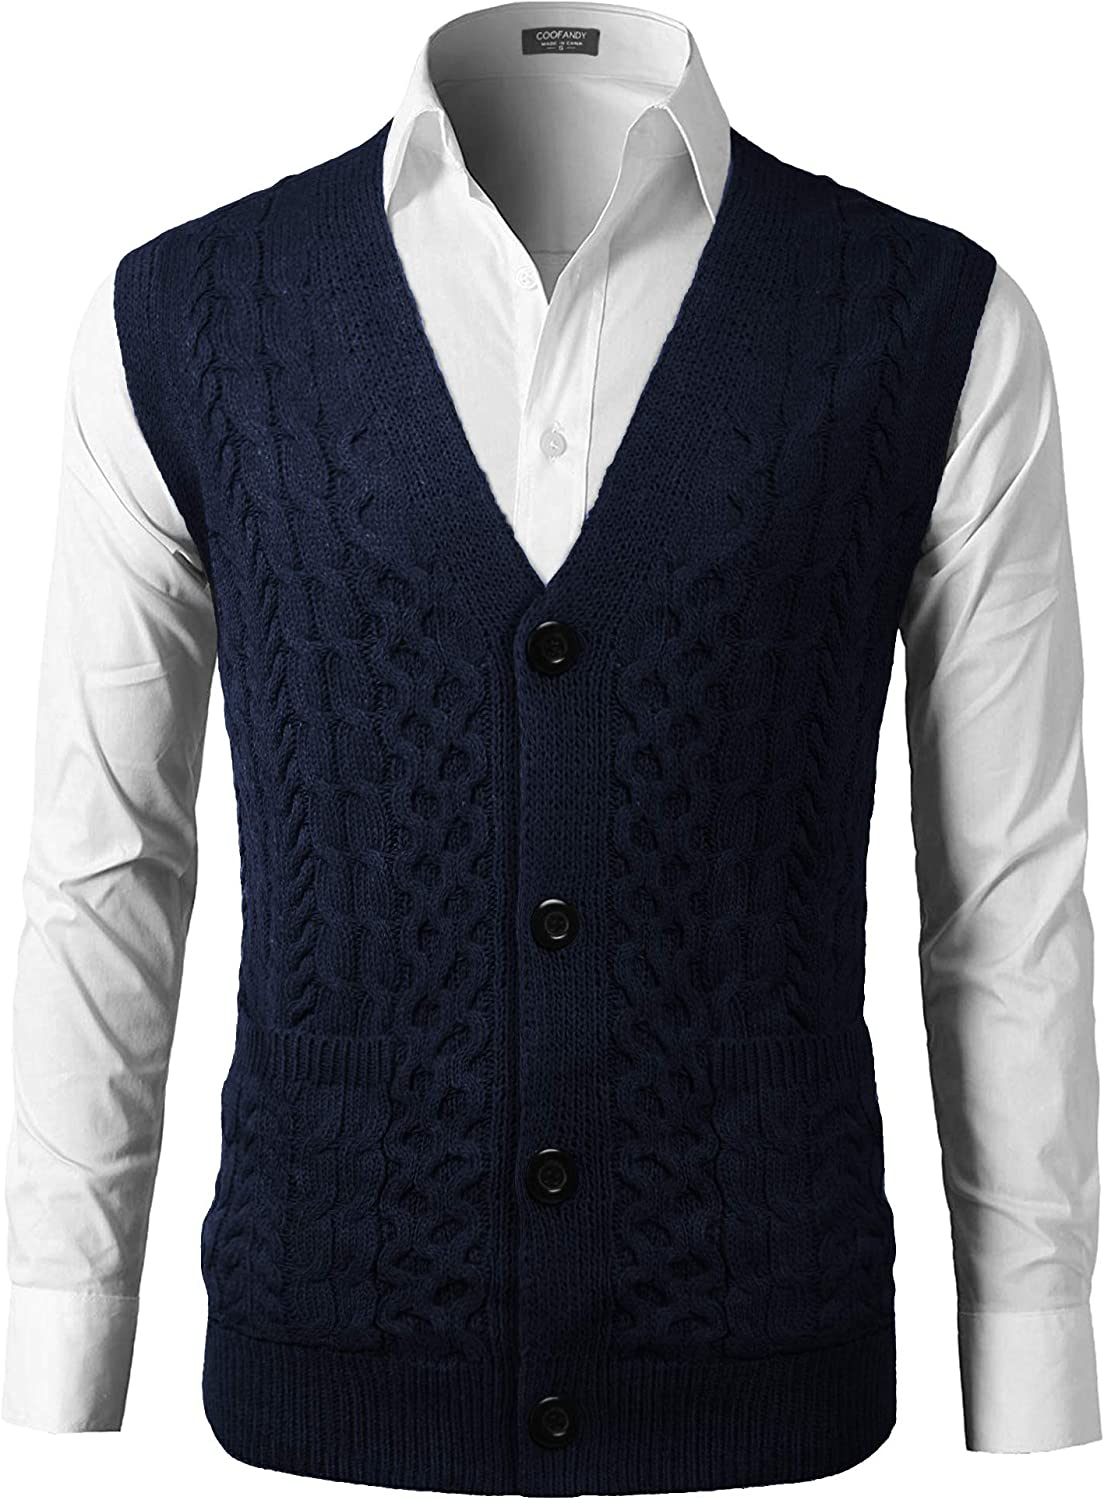 El Paso Mall COOFANDY Men V Max 75% OFF Neck Sweater Vest Knit Causal Buttons Sleeveless